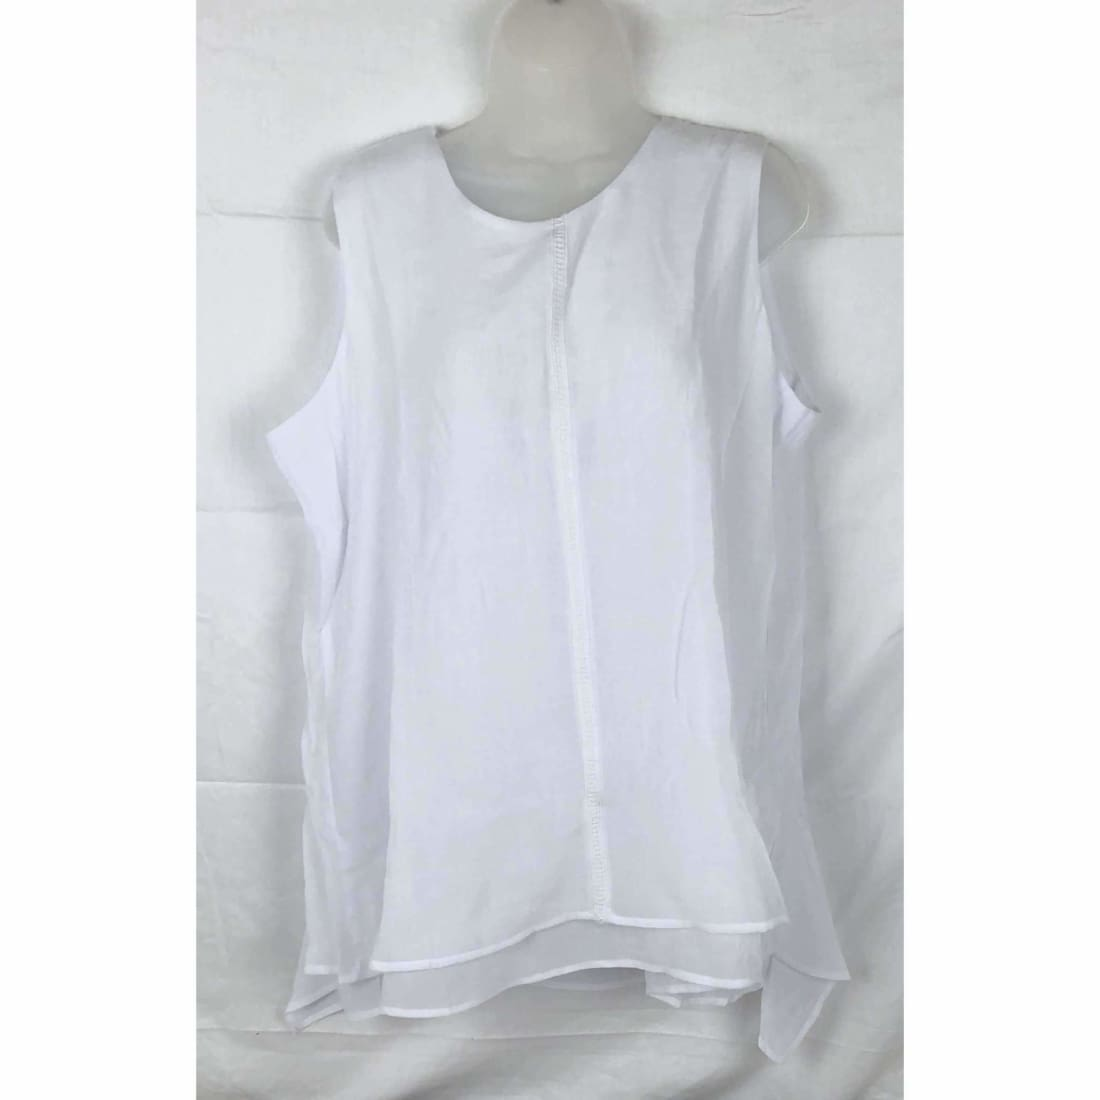 Fever Womens Lightweight Double Layer Woven Sleeveless Blouse Xl / Bright White Tops & Blouses